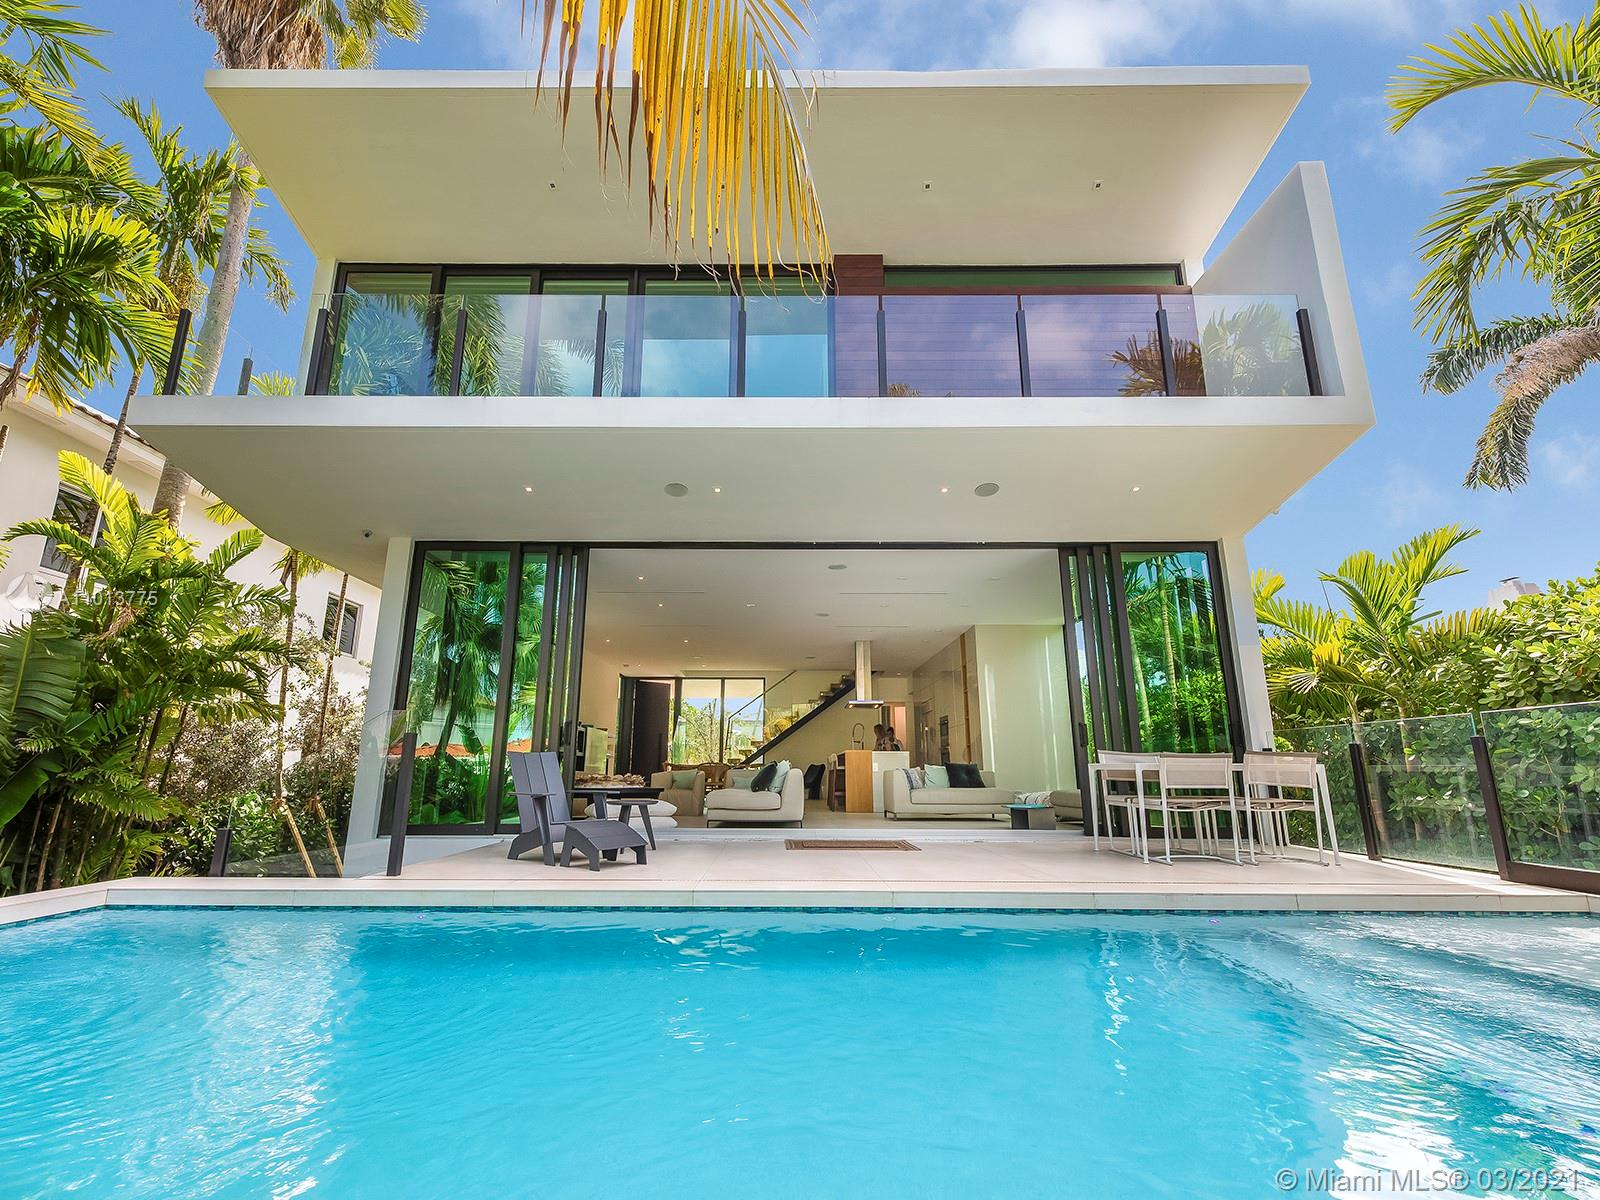 Palm Island #* - 247 Palm Ave #*, Miami Beach, FL 33139